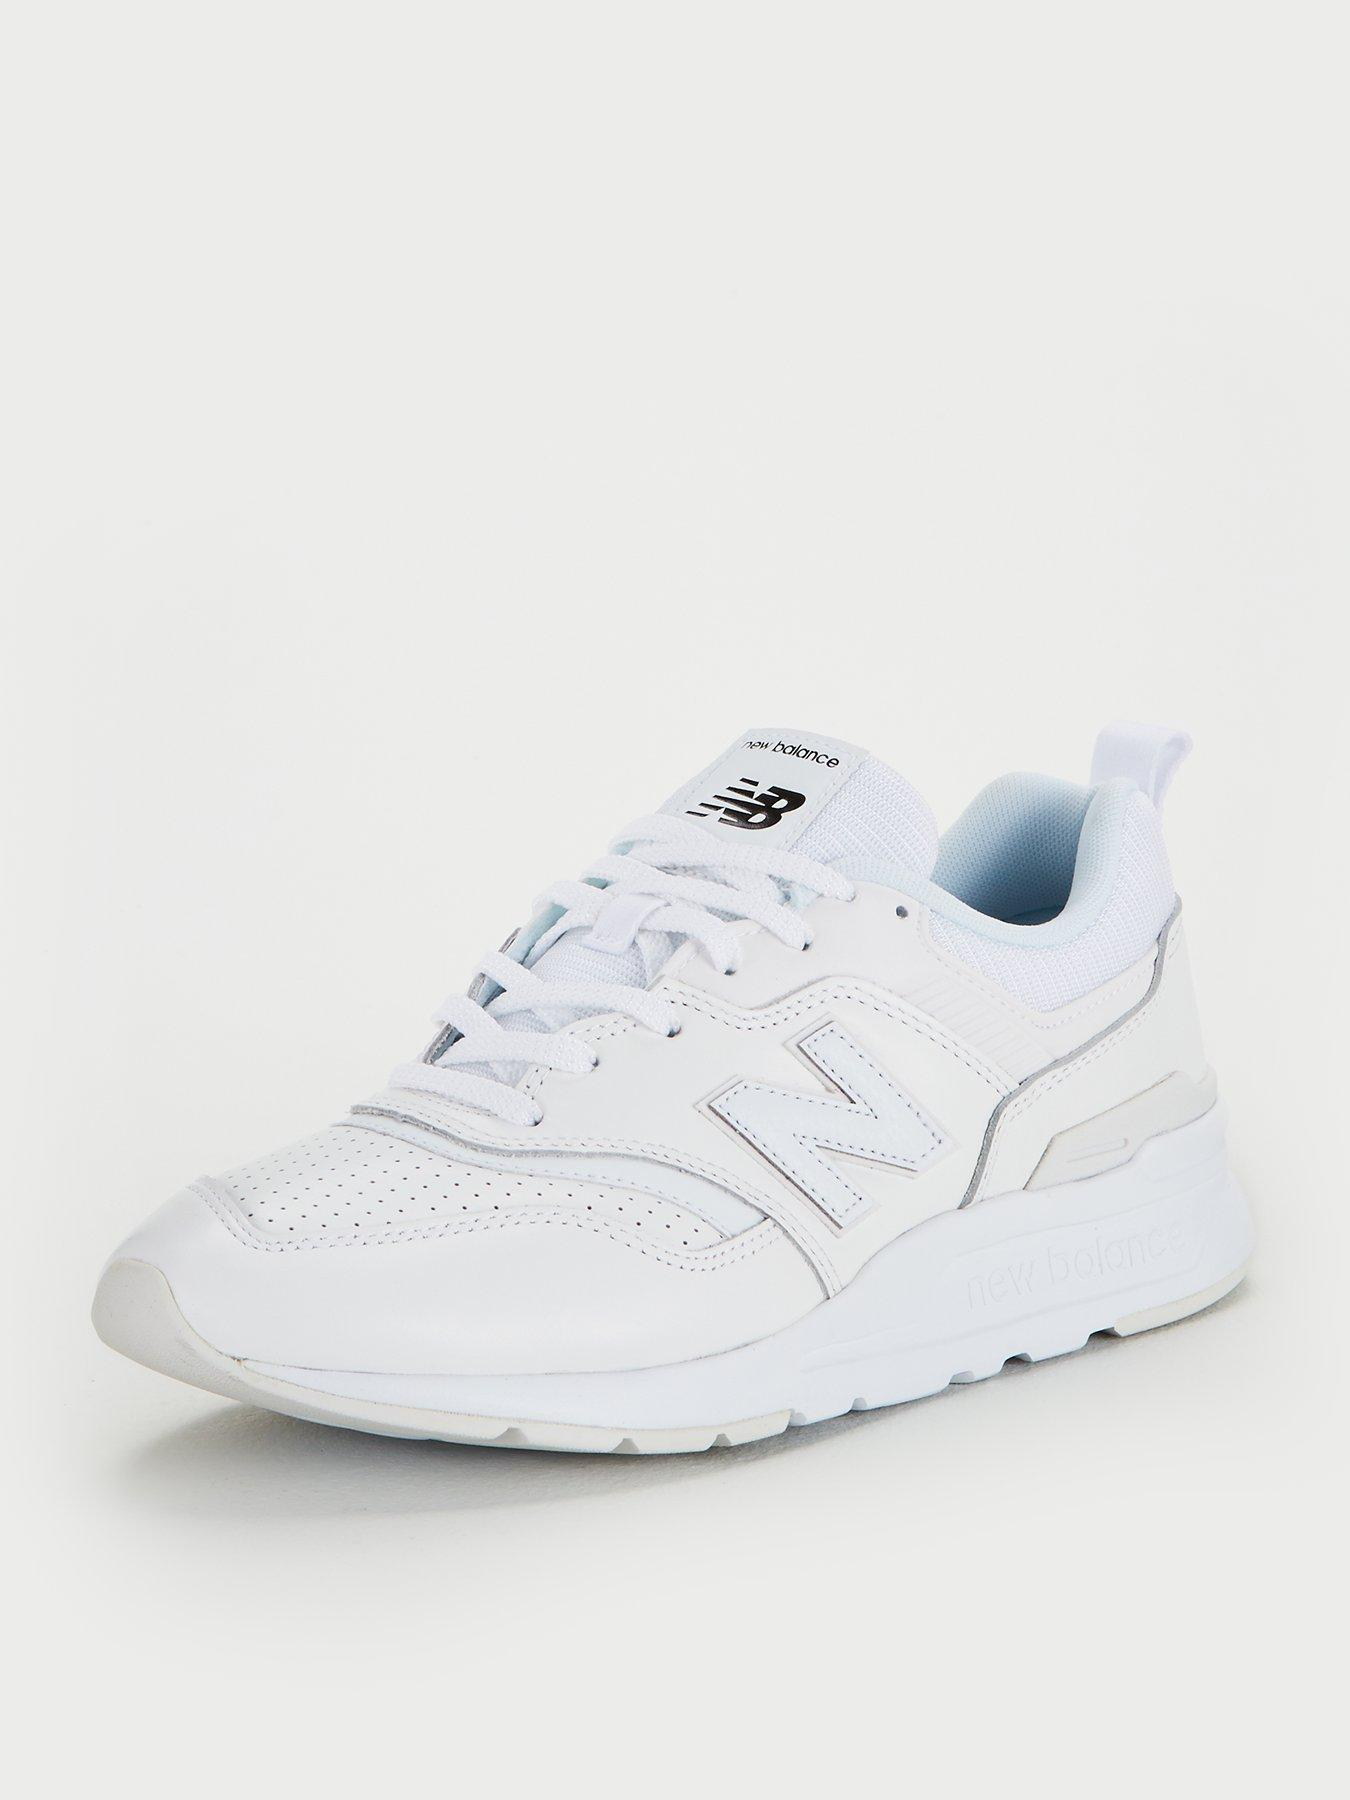 7   New balance   Mens sports shoes   Sports & leisure   www